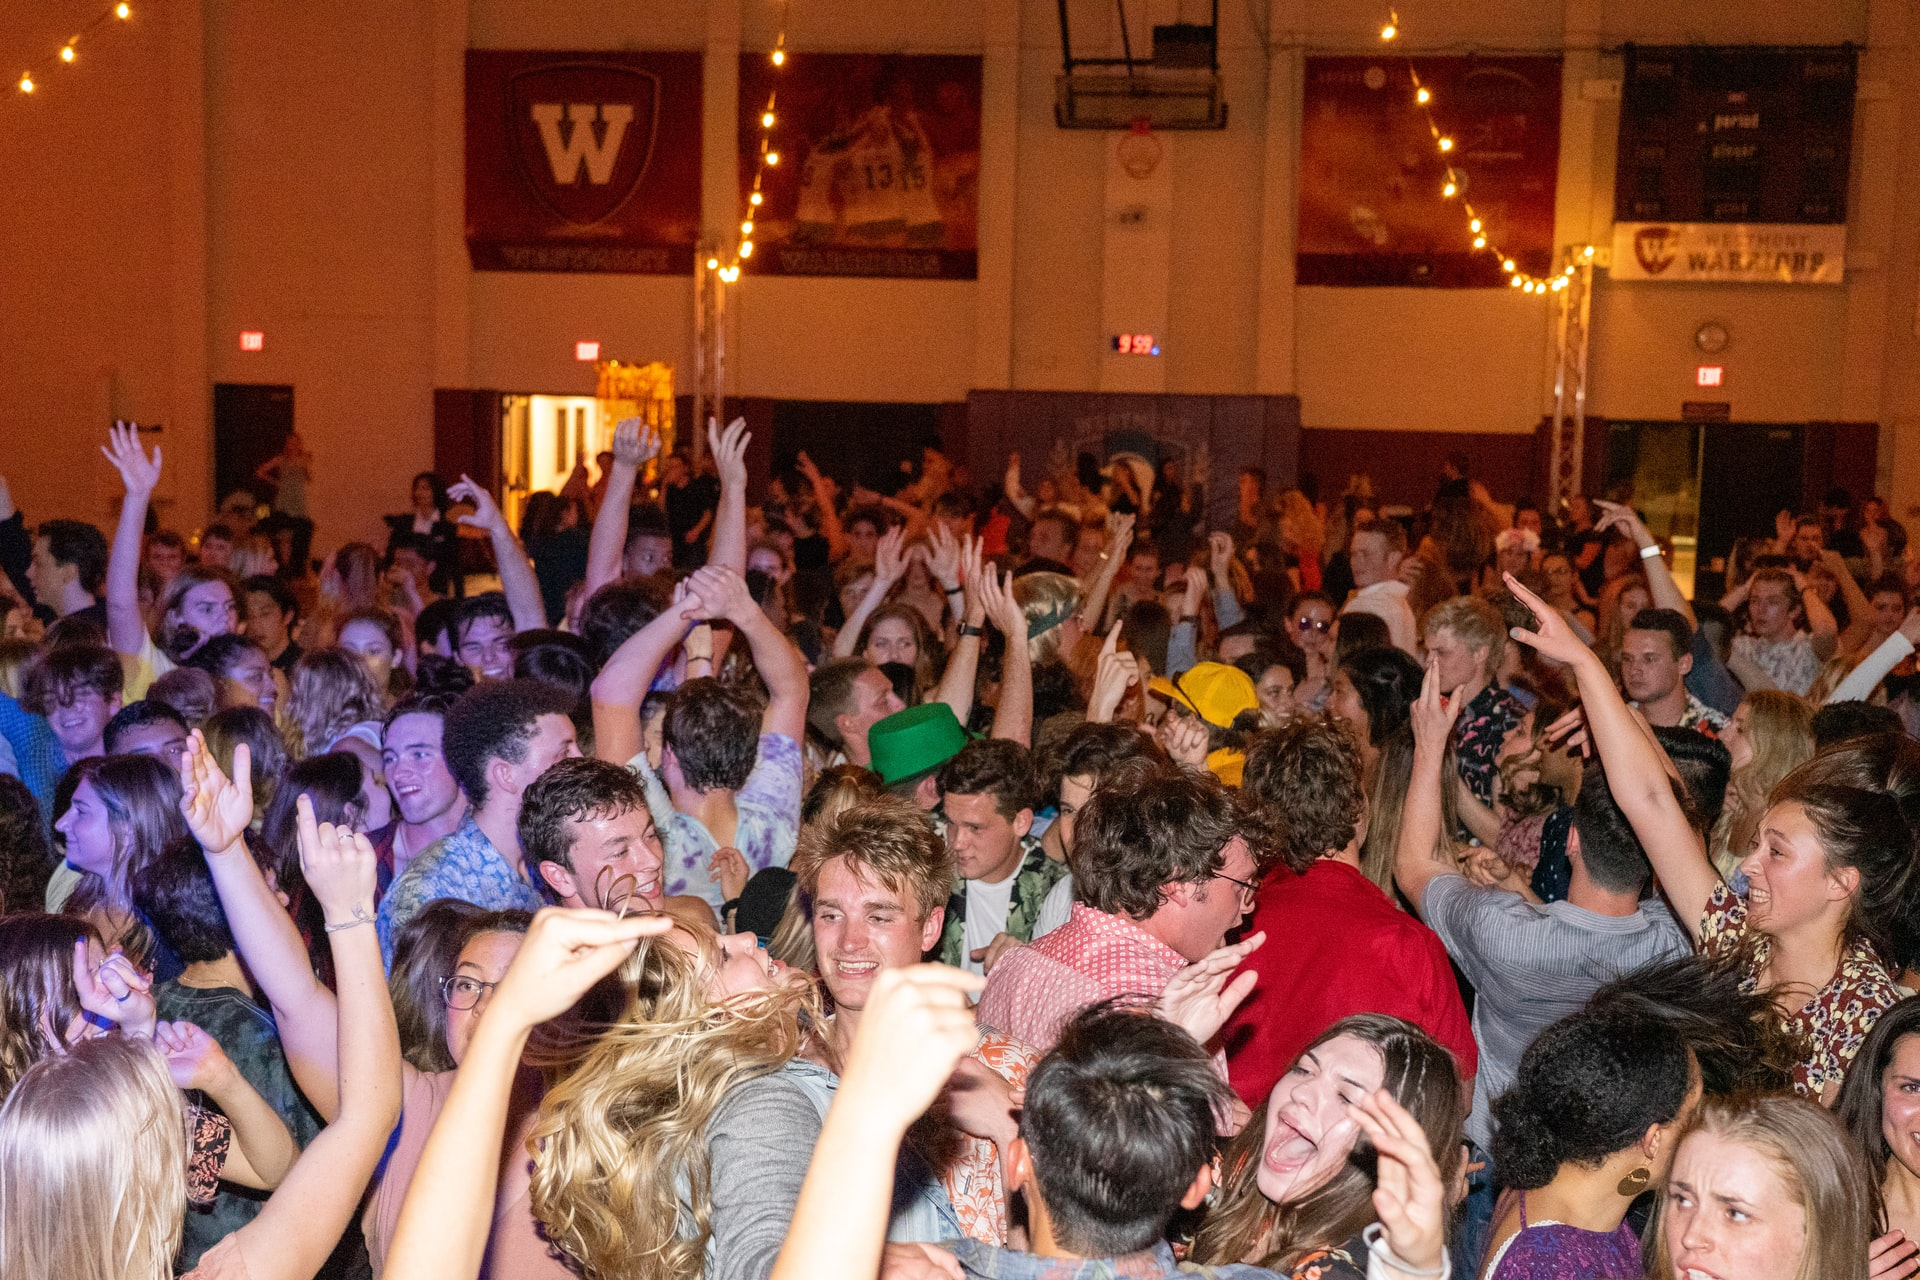 crowded college party